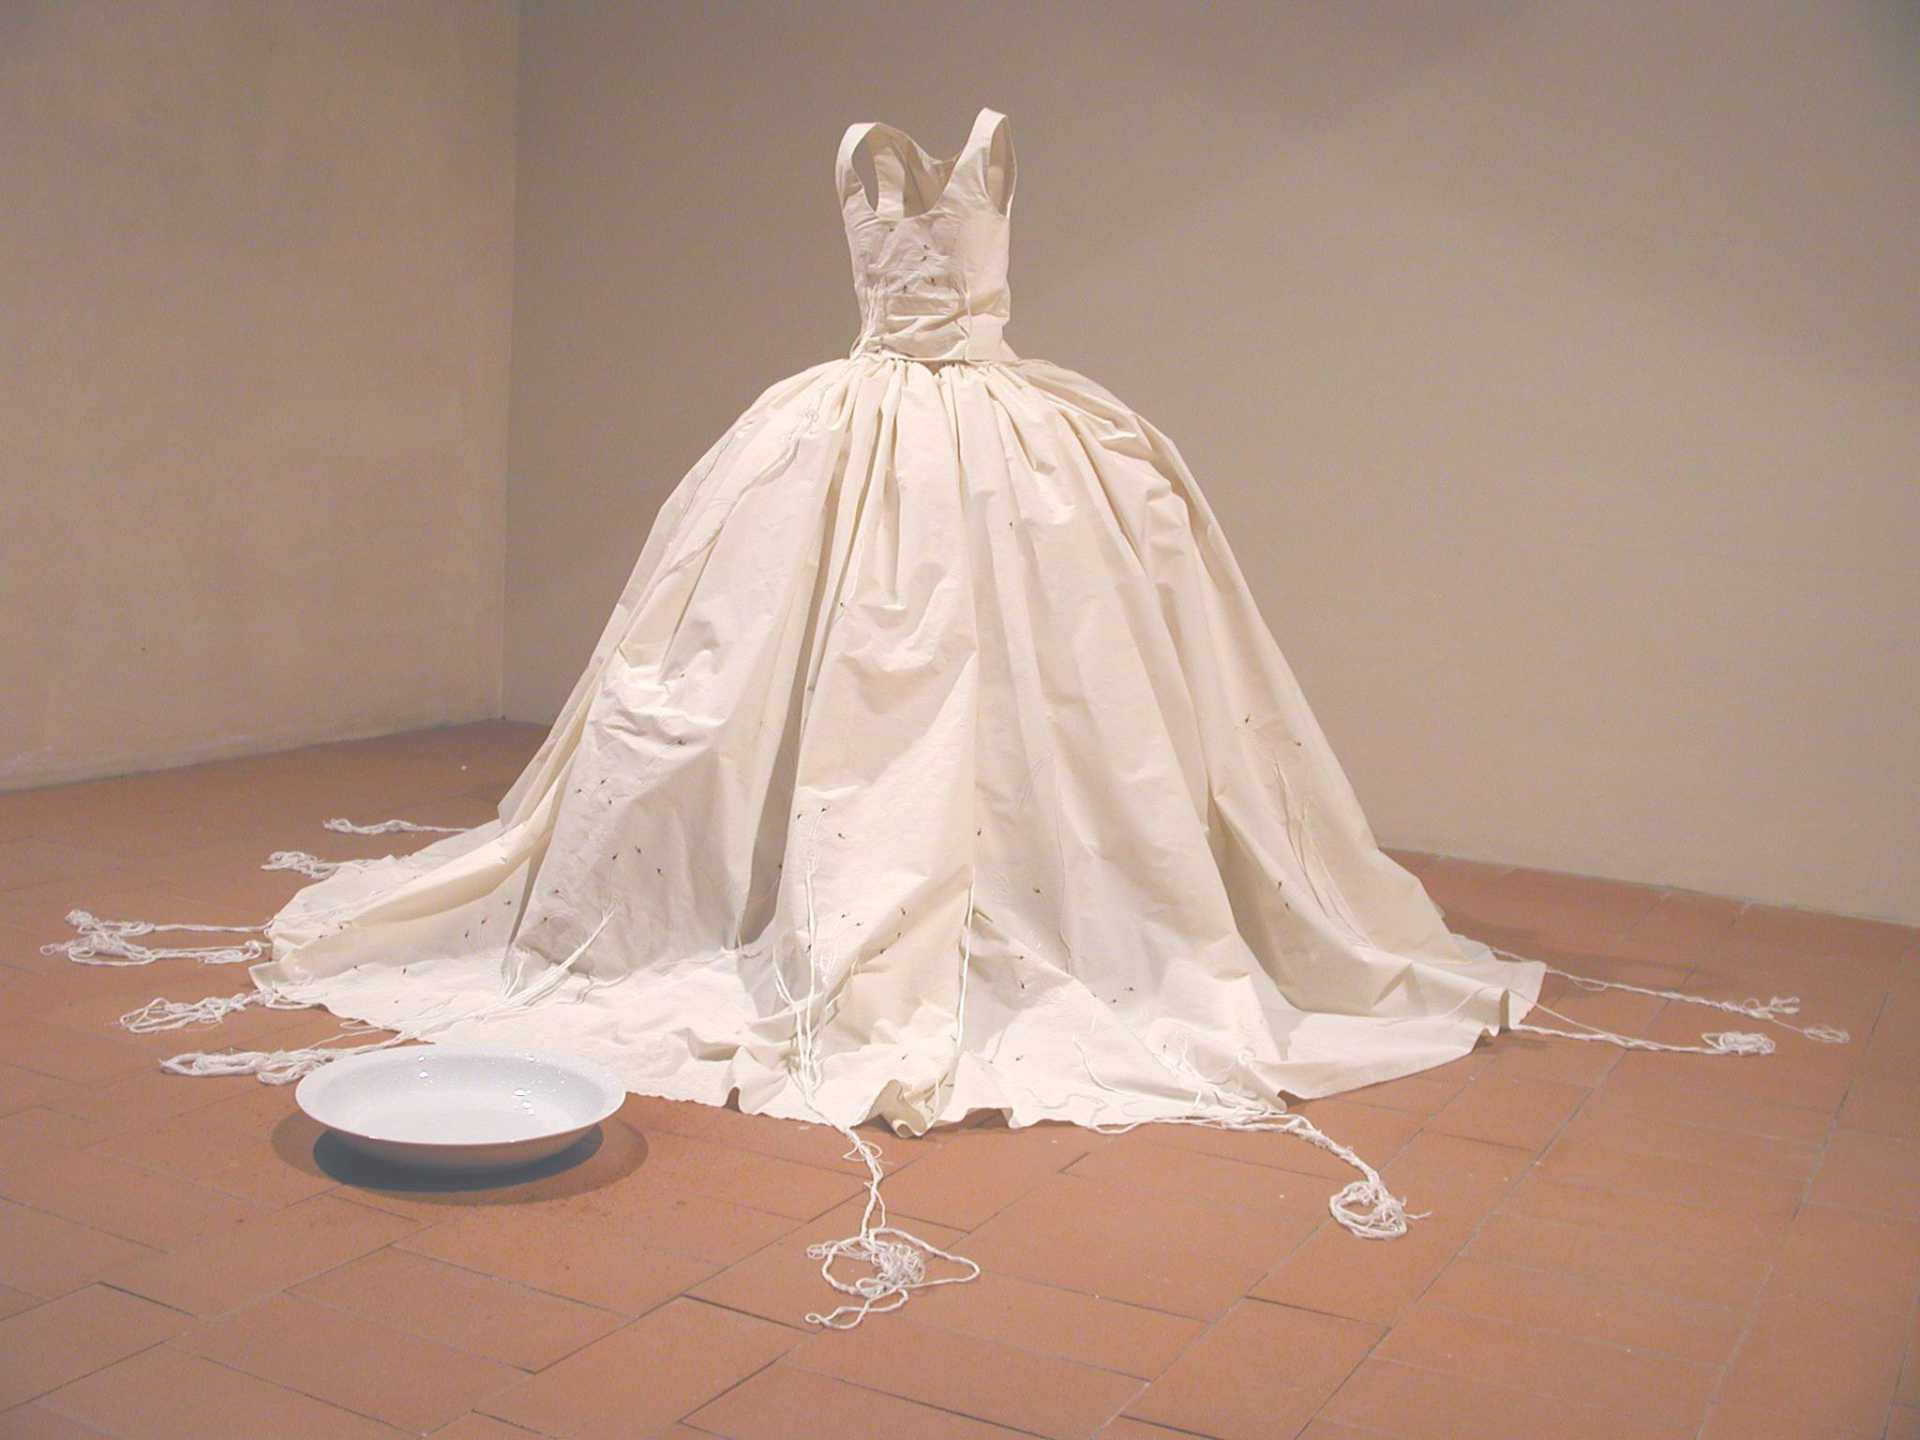 Post Performance Installation - Waiting at palazzo Fabroni in Pistoia, embroidered dress with long threads attached